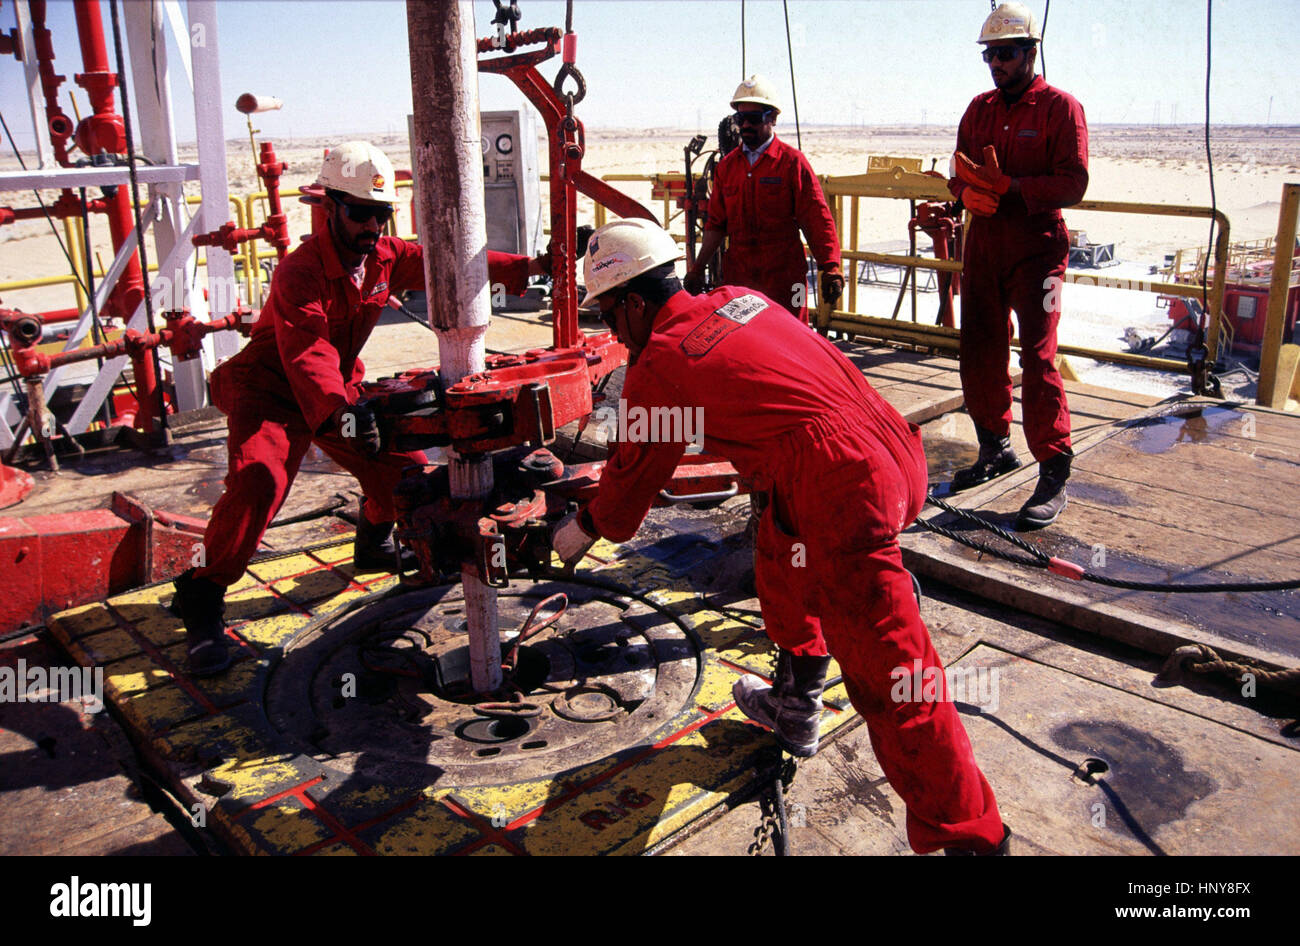 Oil Rig Middle East Stock Photos & Oil Rig Middle East Stock